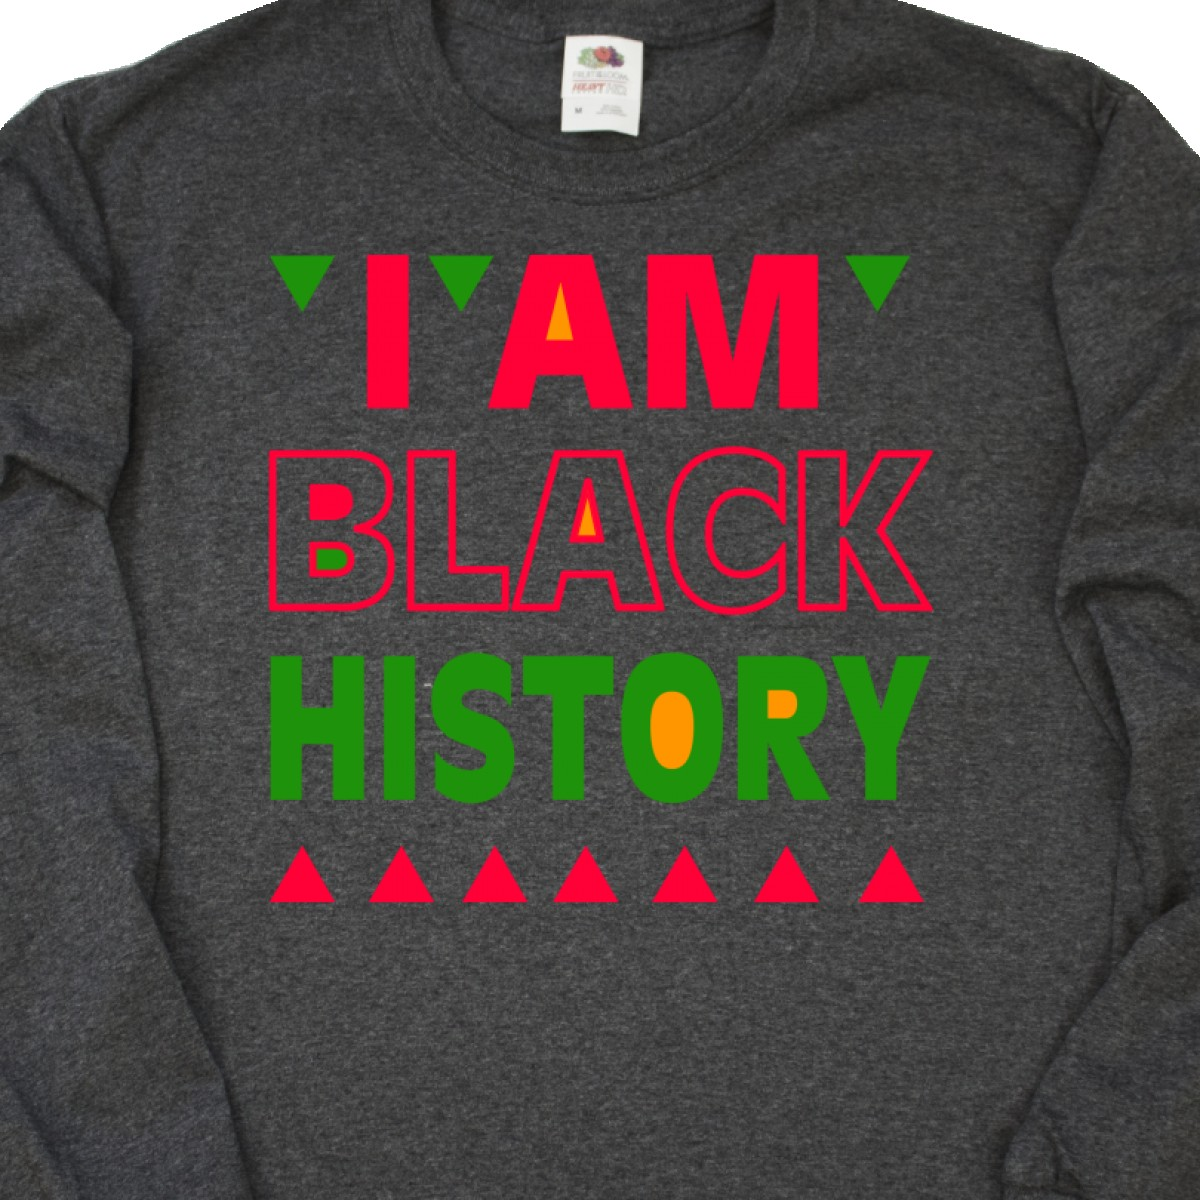 4901c57df39 Inktastic I Am Black History Long Sleeve T-Shirt Month Celebrate ...